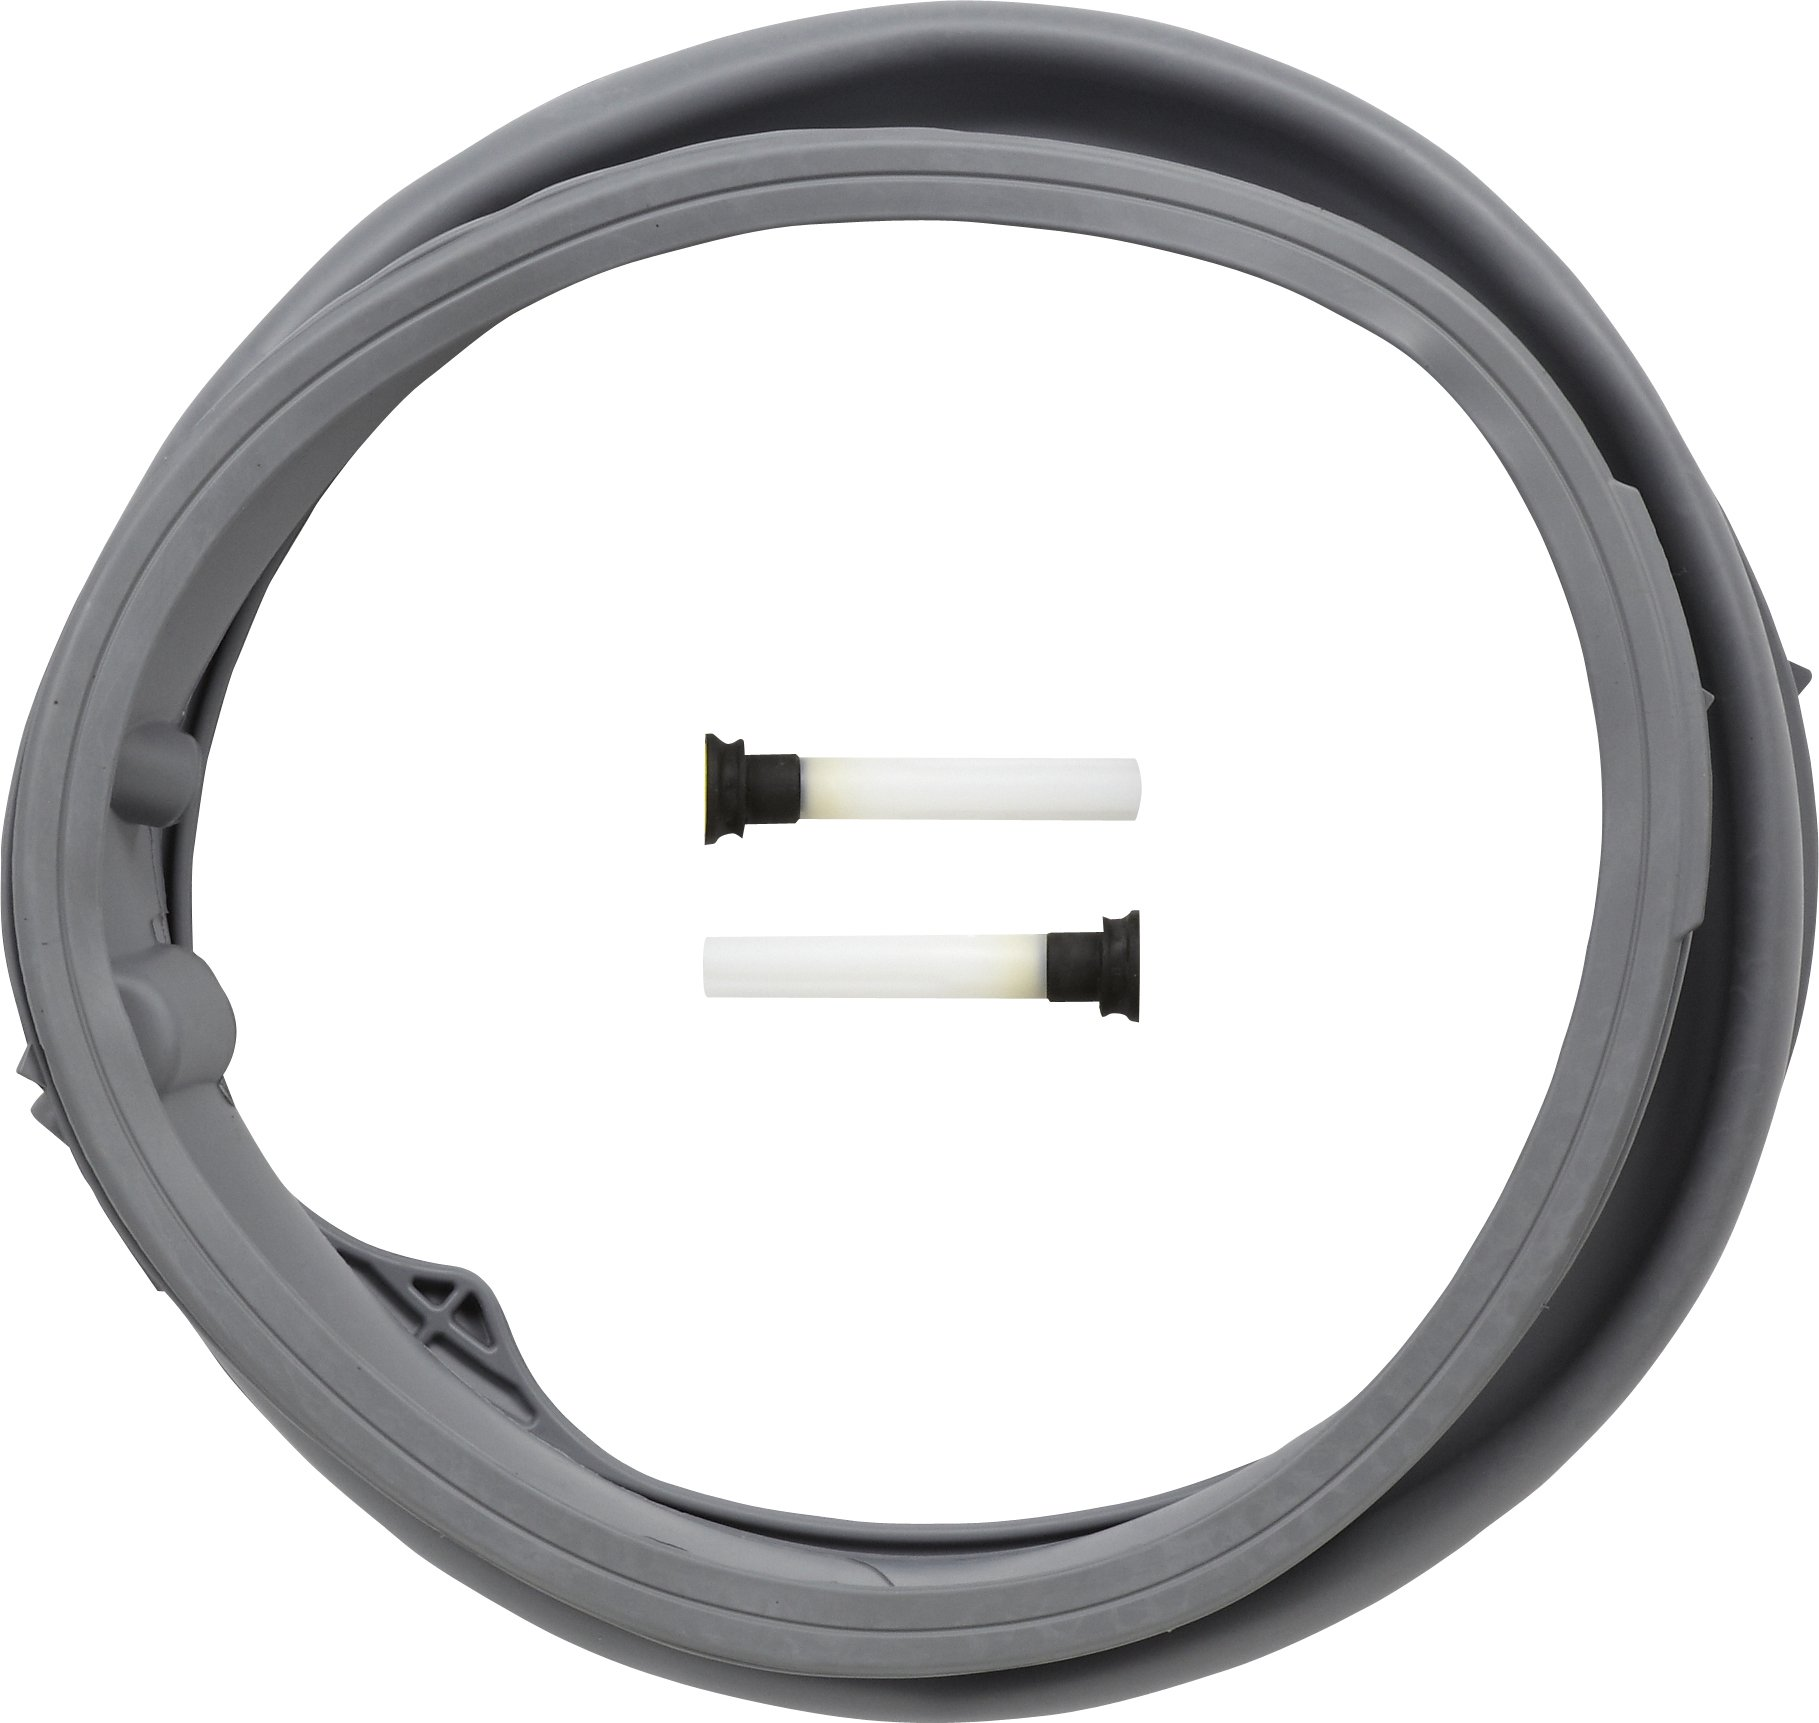 Frigidaire by Electrolux 134515300 Bellows Kit